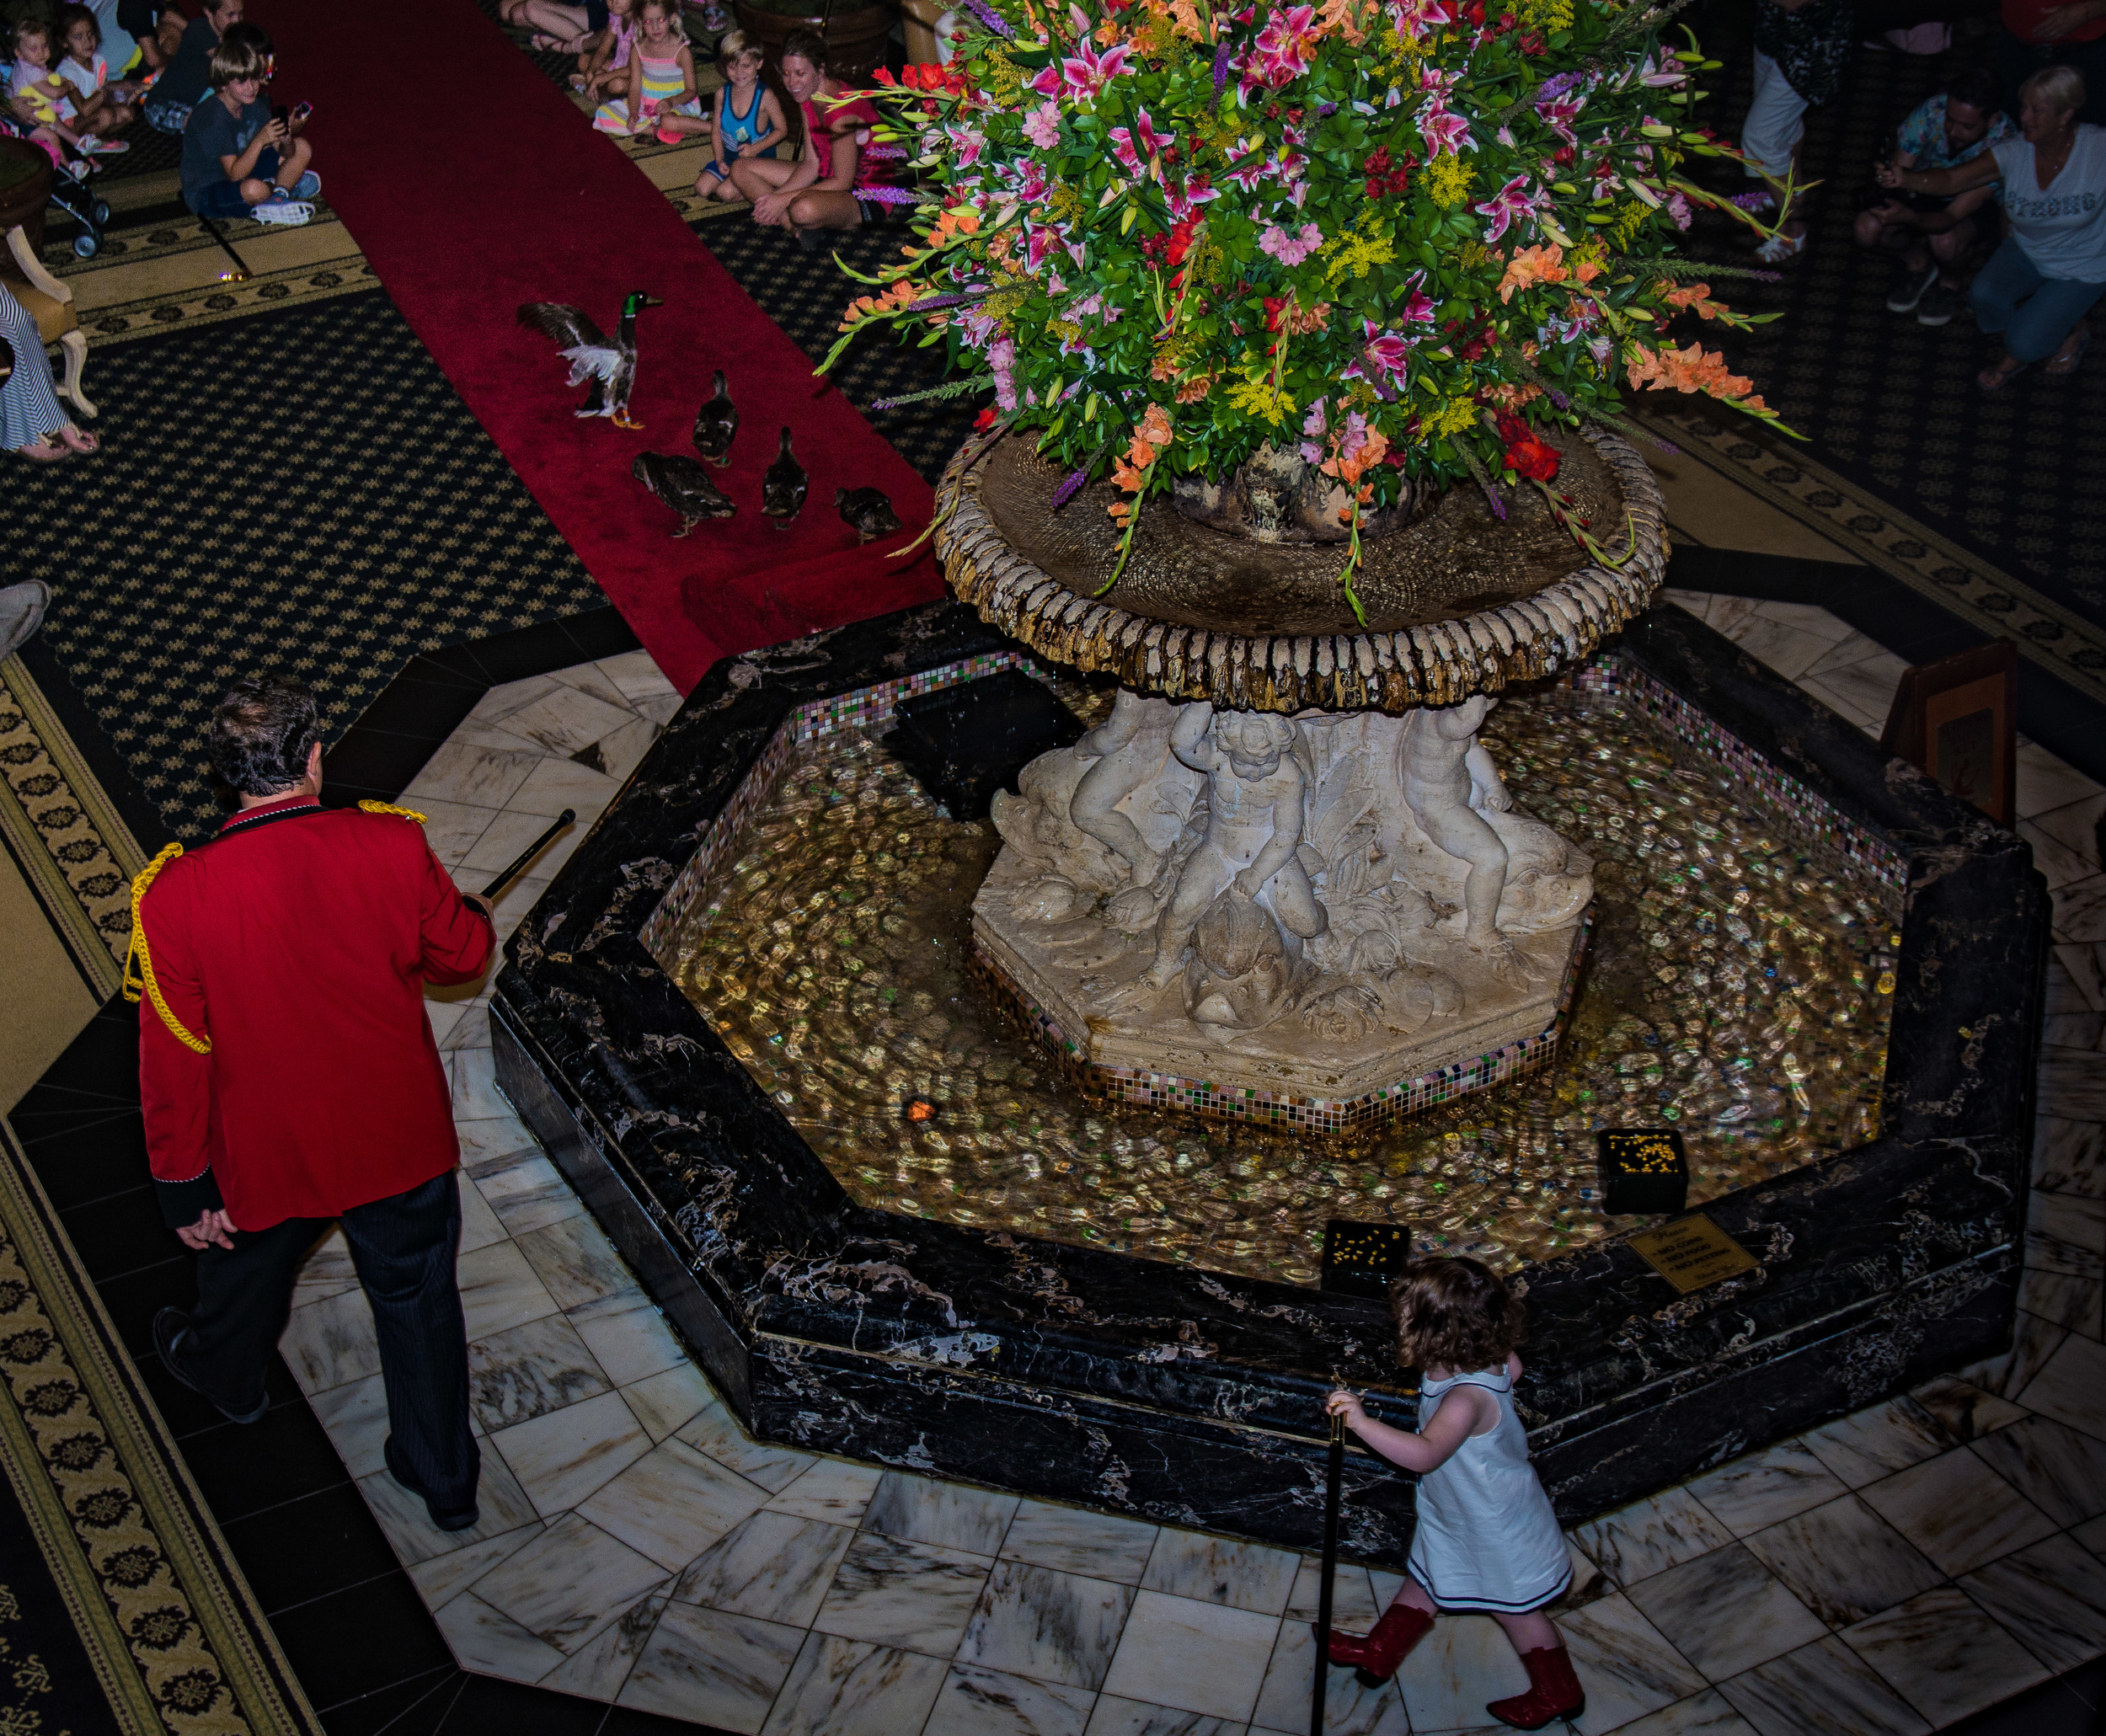 There was a huge crowd close to the ducks, so we went up to watch from the balcony overlooking the lobby. The young lady in her red boots was the honorary duckmaster.